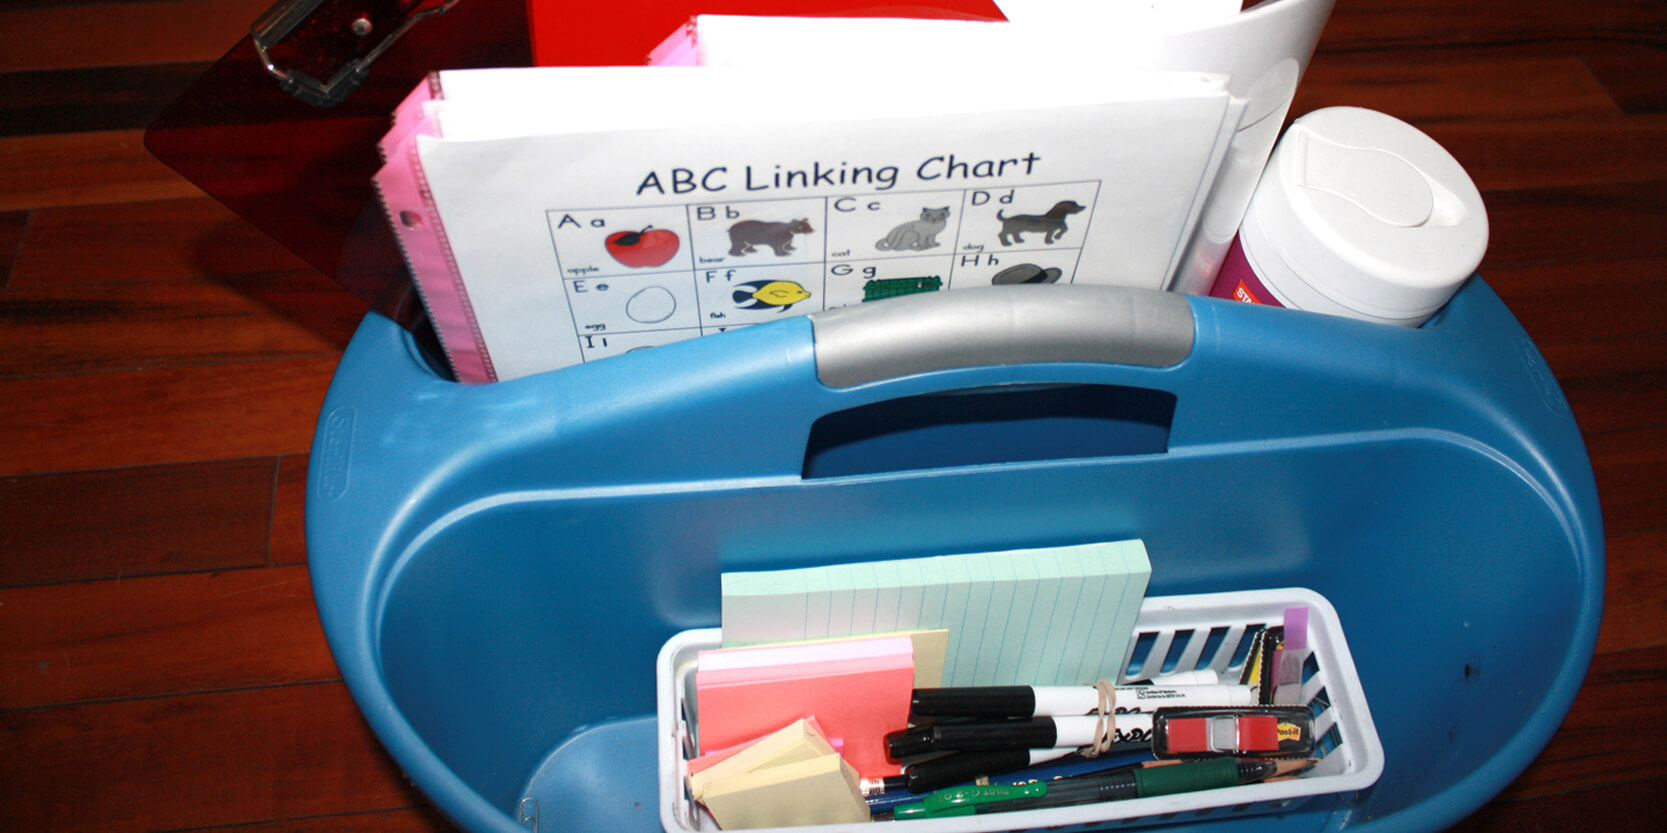 Organize Supplies to Maximize Time in Small Groups